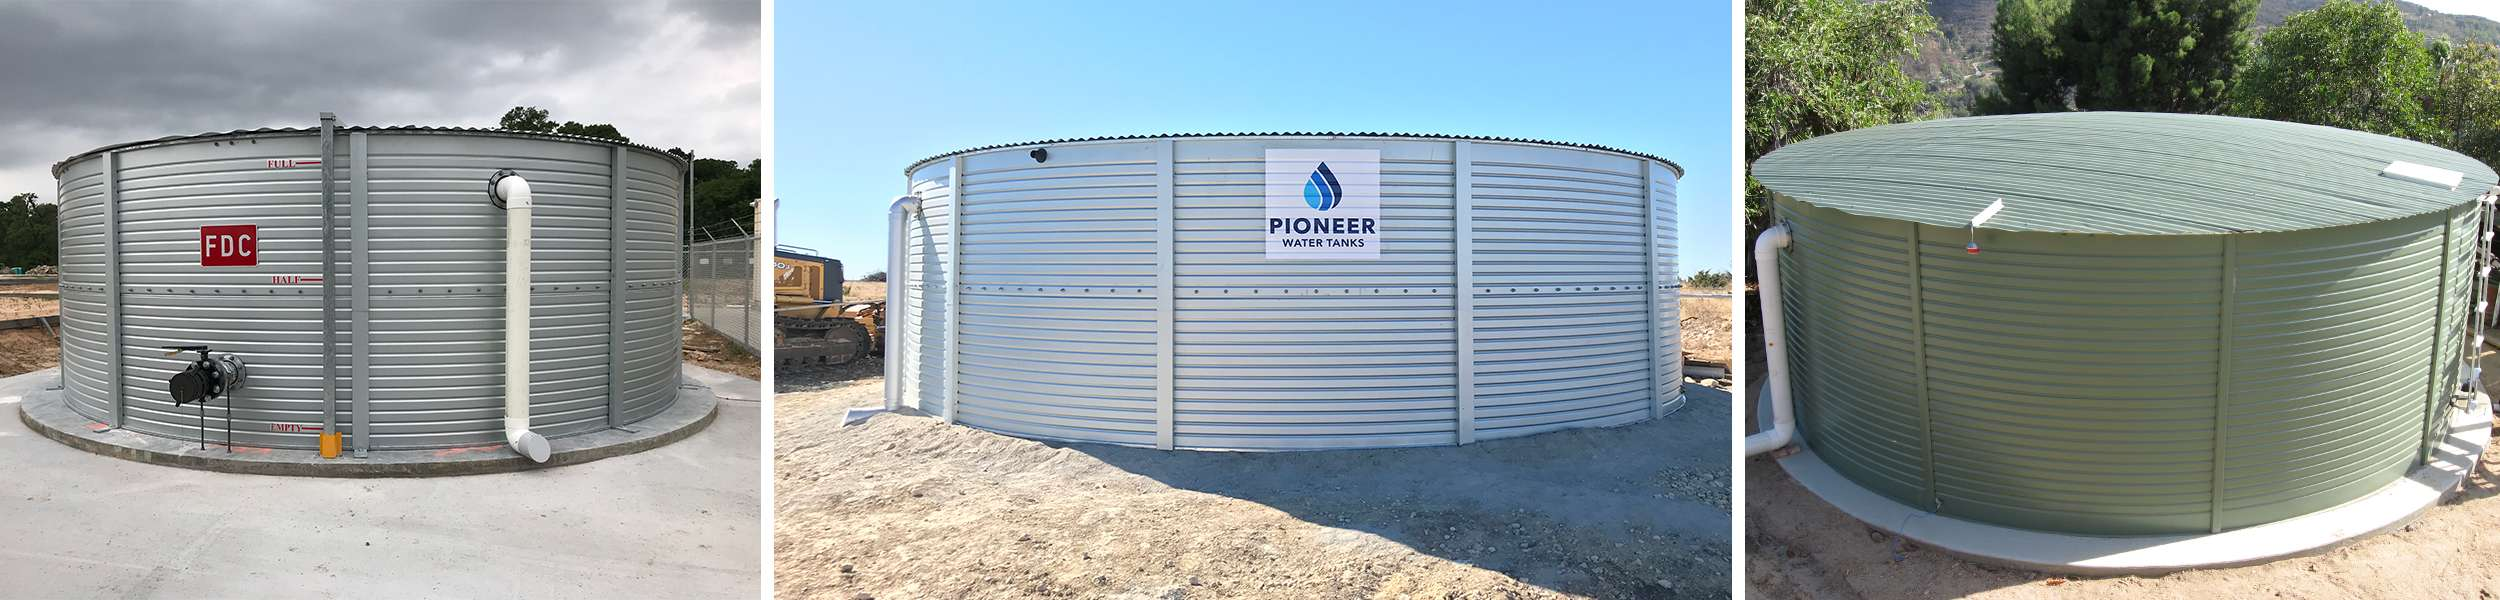 Water storage tank applications in Texas